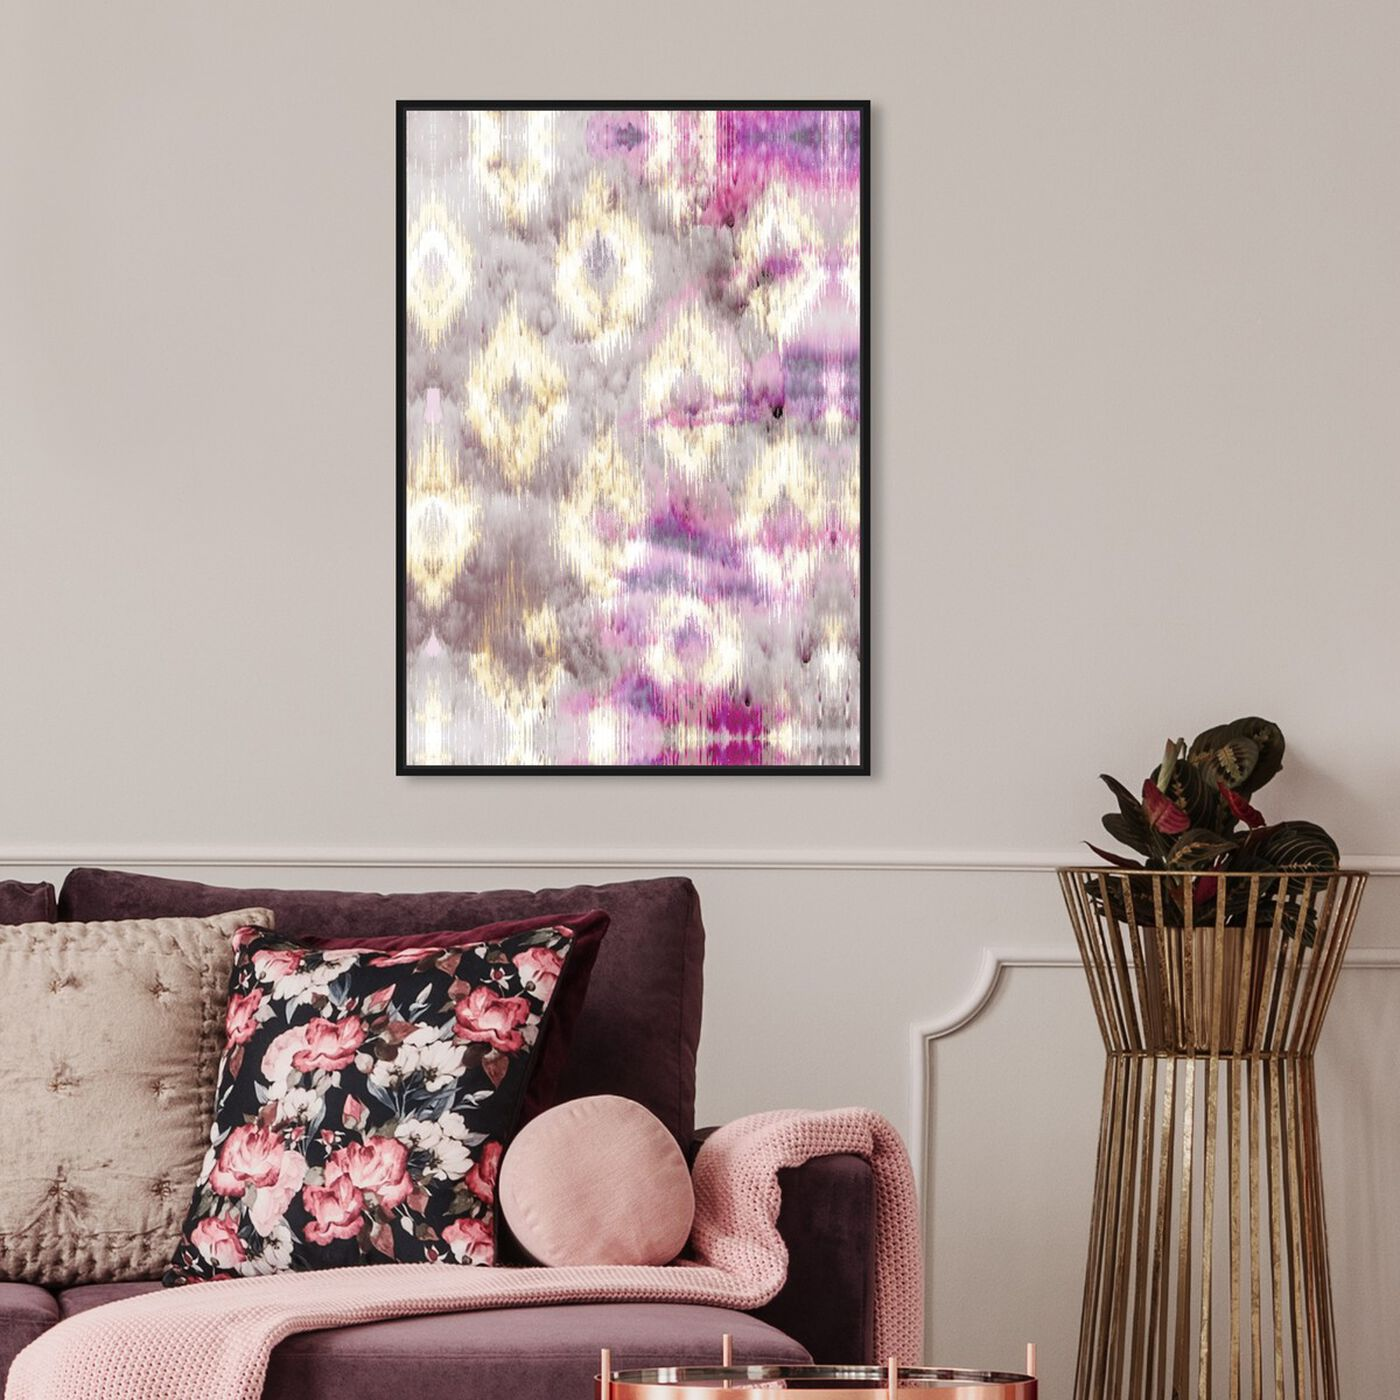 Hanging view of Altaria featuring abstract and patterns art.